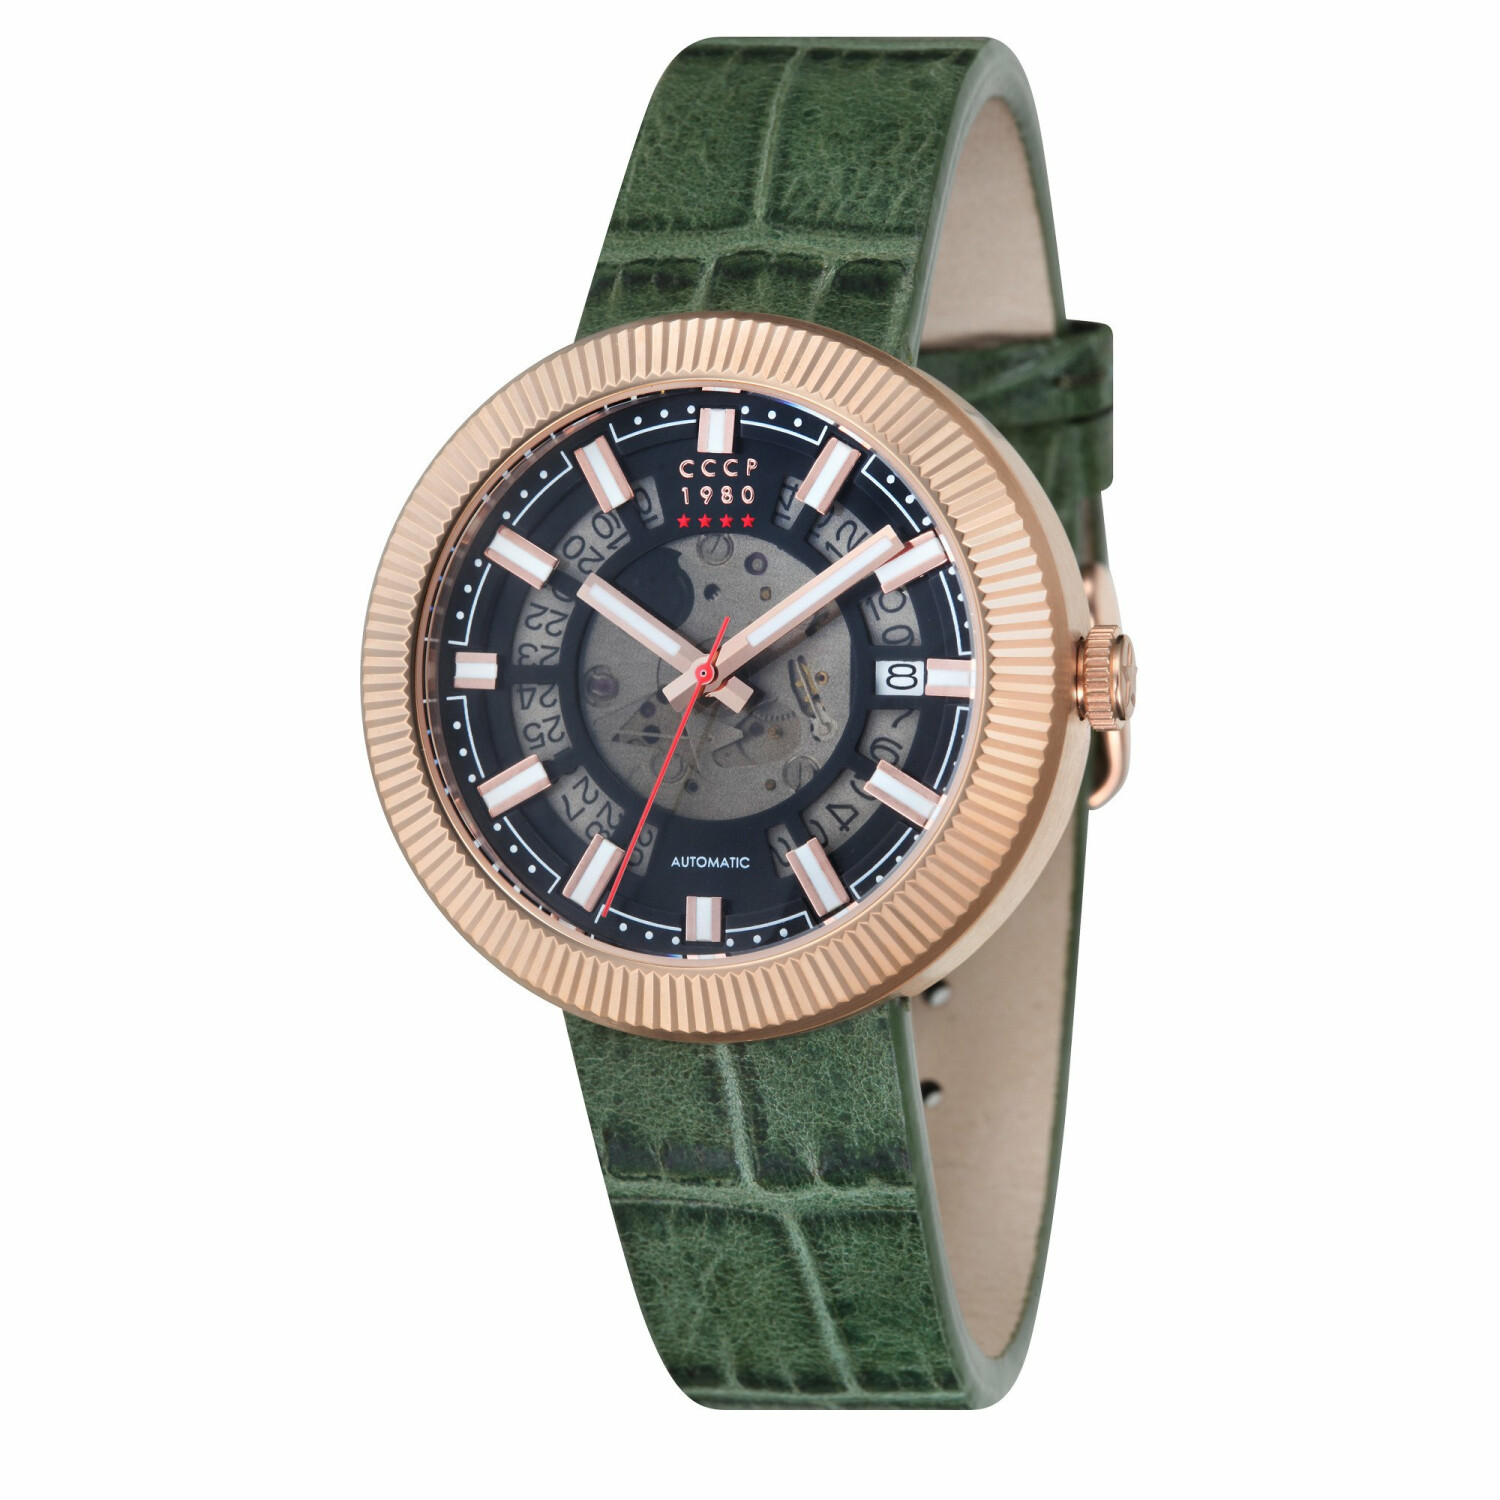 Cccp Men's Monino CP-7025-06 Green Leather Japanese Automatic Fashion Watch